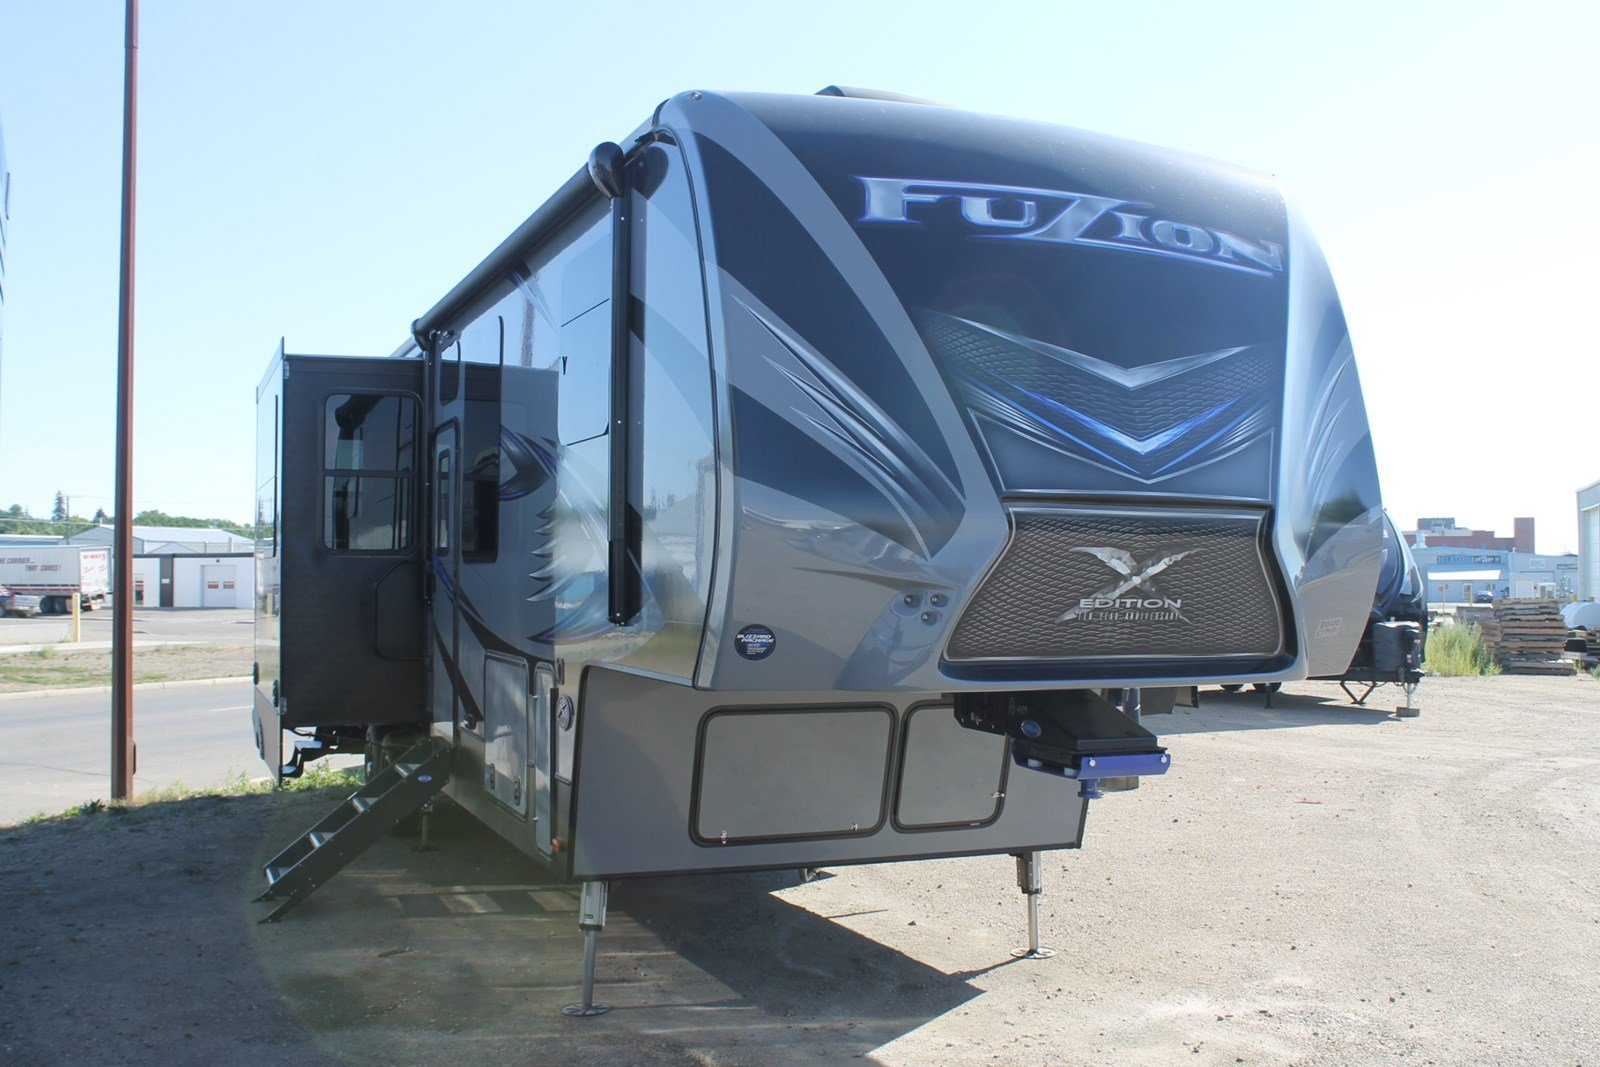 New FUZION 371 FIFTH WHEEL